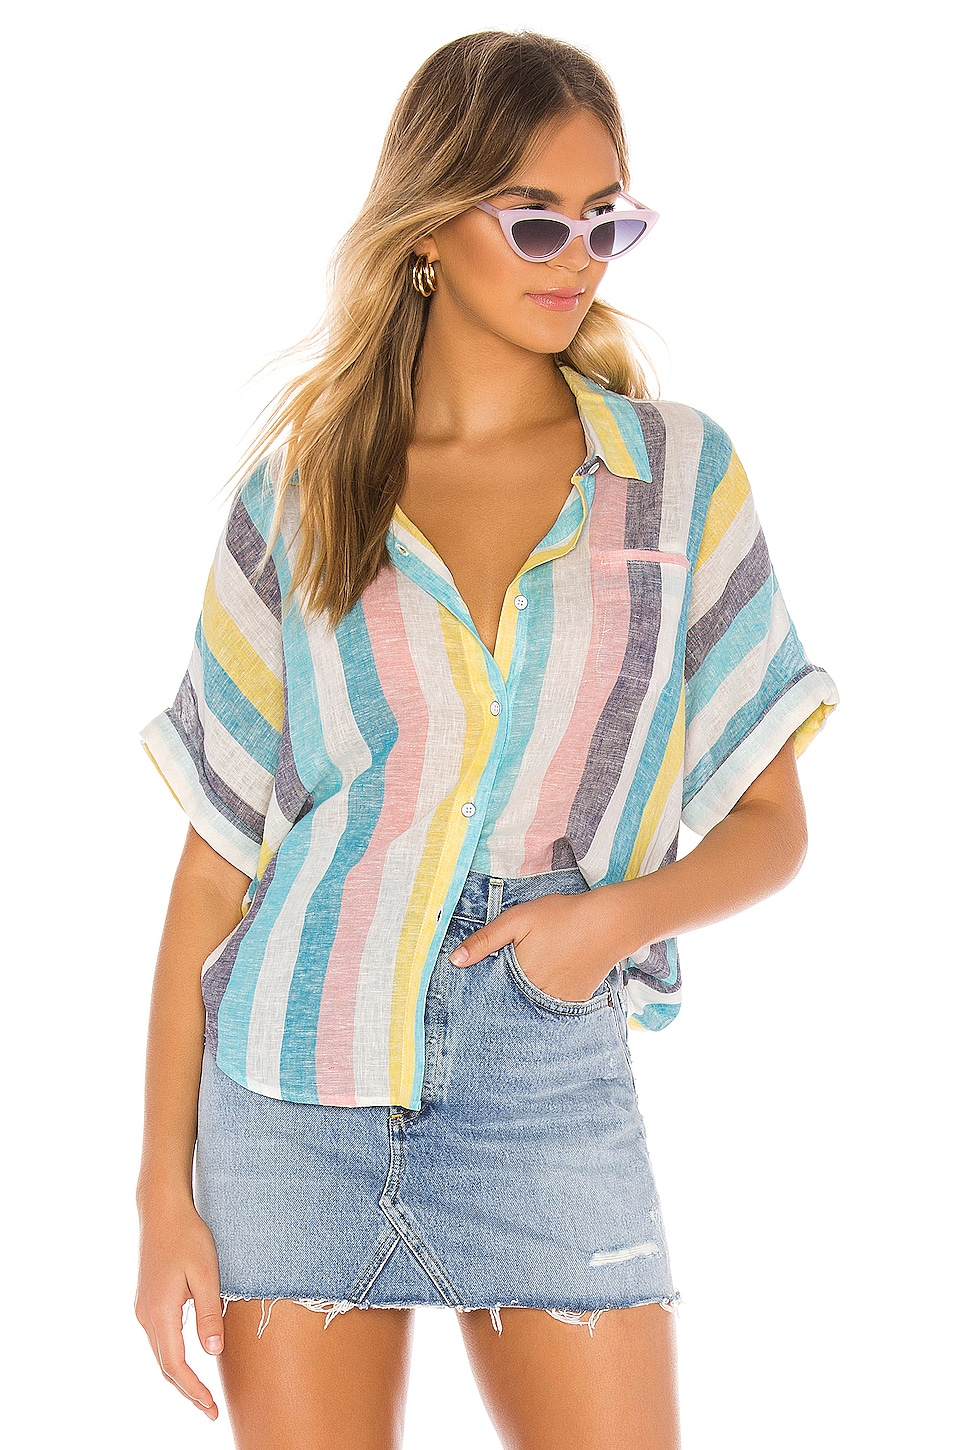 Splendid Button Down in St. Barths Stripe